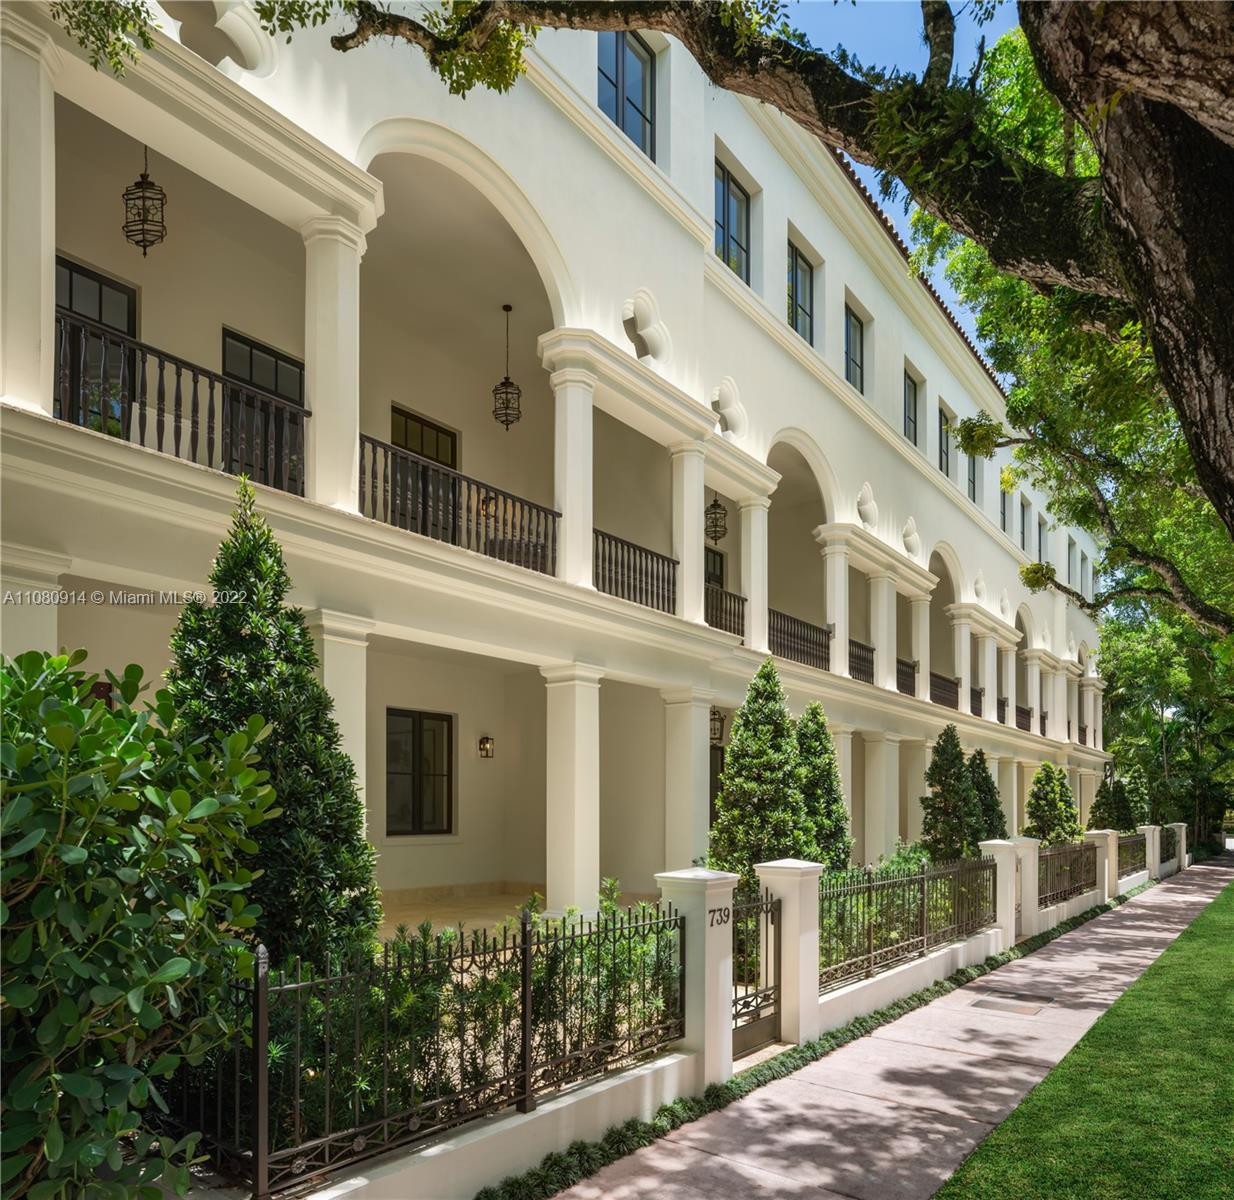 Althea Row's collection of five, three-story Spanish-Colonial style town homes are a timeless example of Coral Gables' architectural legacy. Residents can experience 7,000 total square feet of spacious open floor plans, private front gardens, interior patios and stunning loggias that honor South Florida's modern contemporary lifestyle. Steps from iconic landmarks including Miracle Mile and the Biltmore Hotel, Althea Row is the quintessential sanctuary, combining sophistication and elegance.